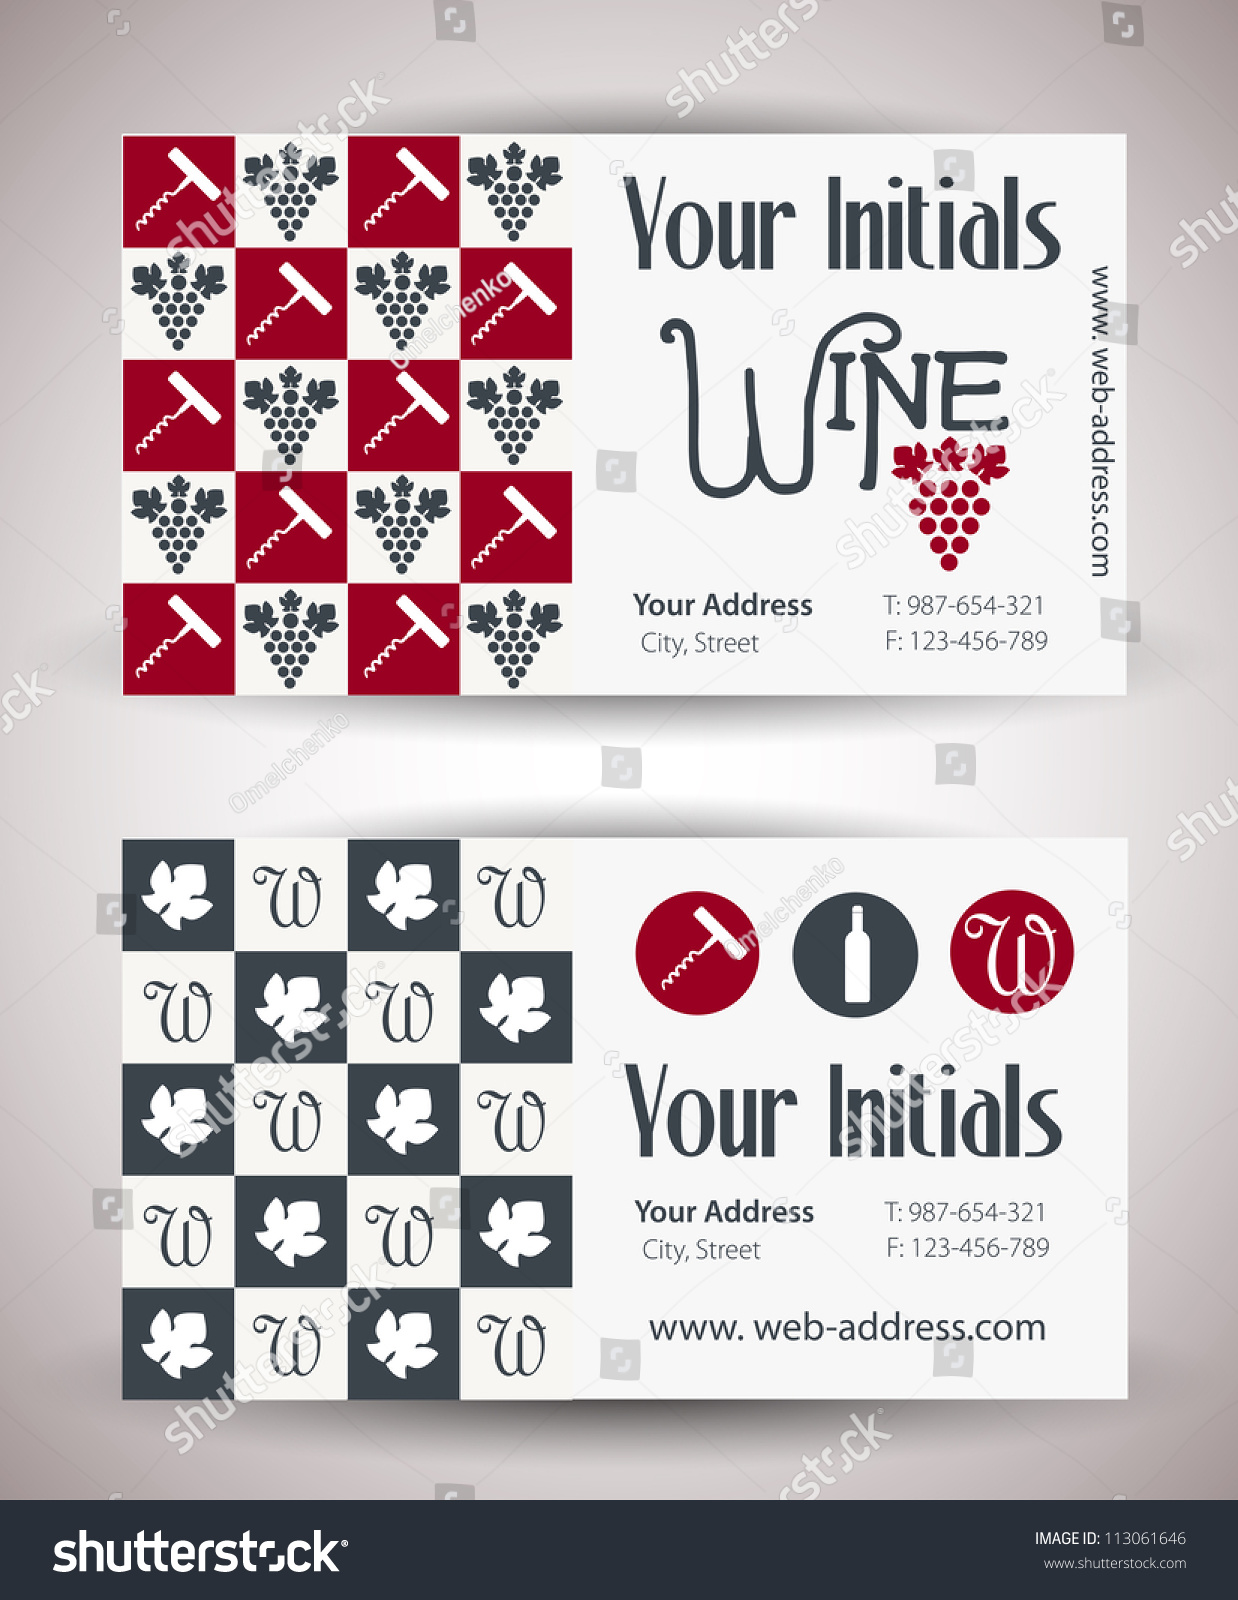 Liquor Store Business Cards Images - Free Business Cards